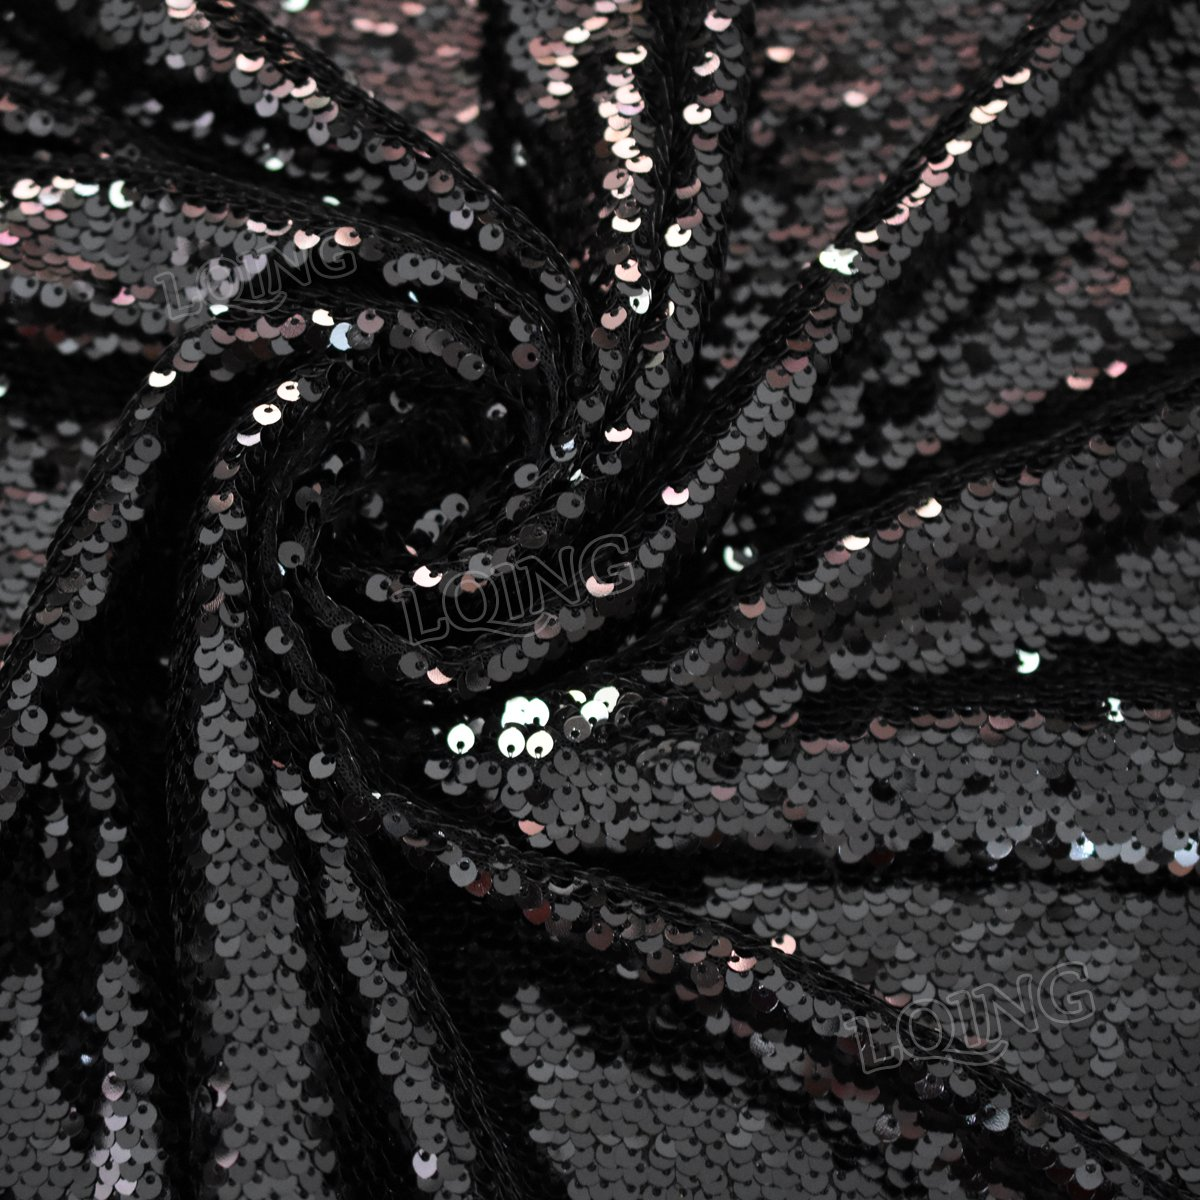 e1cc88c451 Black silver mermaid sequin reversible sequin jpg 1200x1200 Sequin dress  fashion black dragon scales